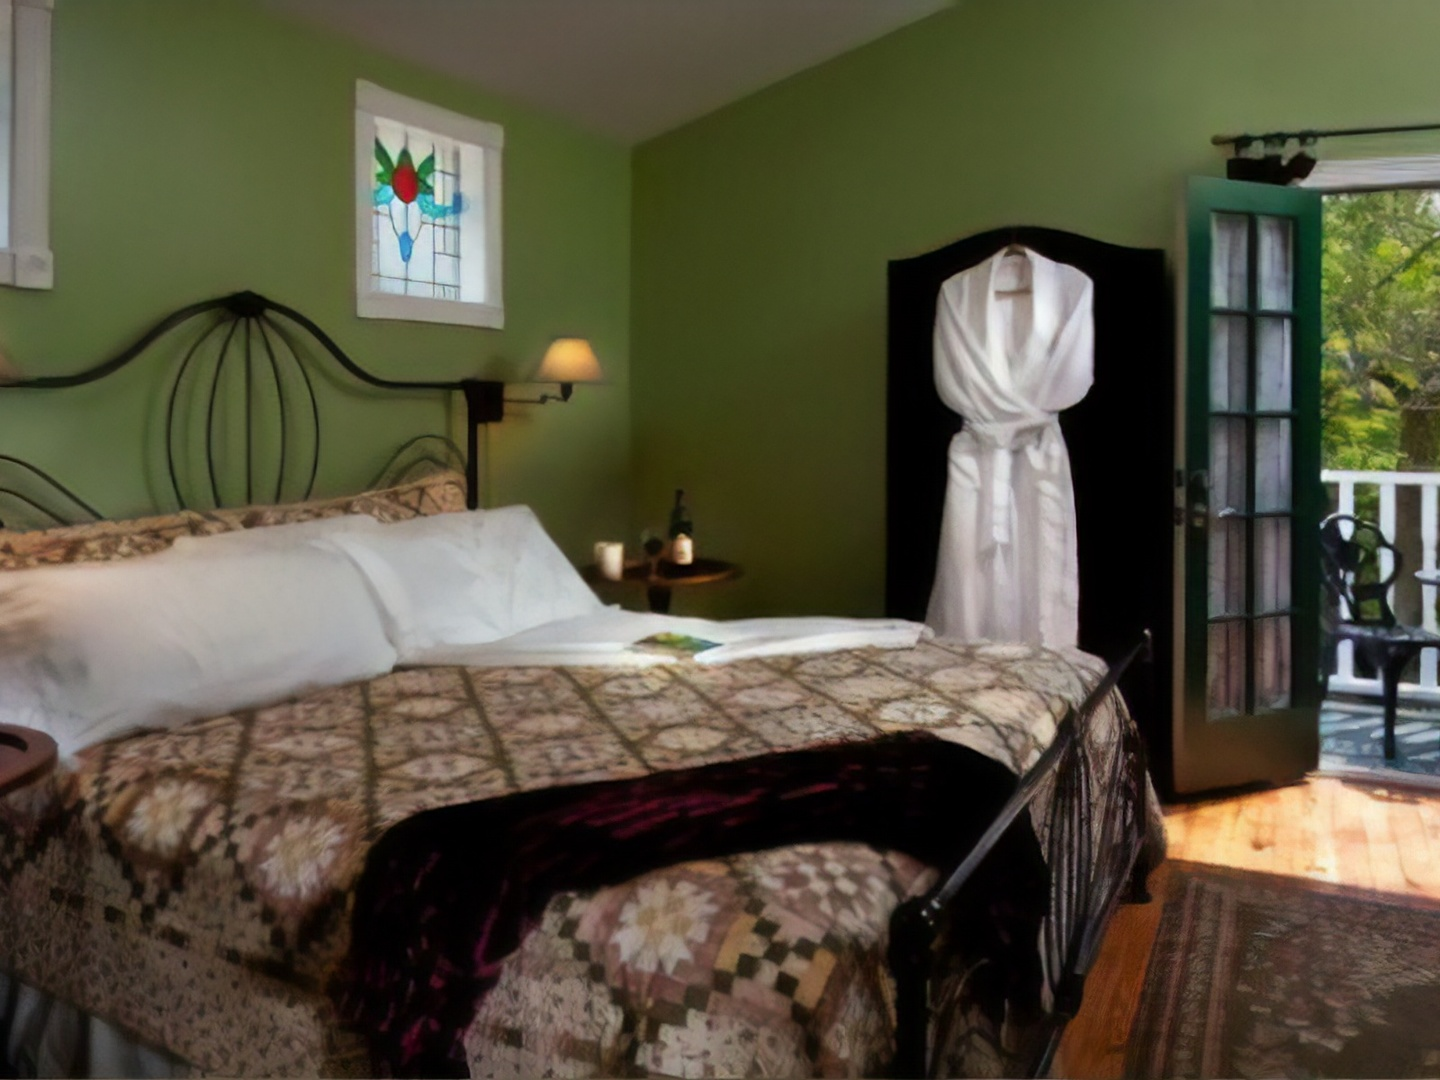 A bedroom with a bed in a room at White Oak Manor Bed and Breakfast.